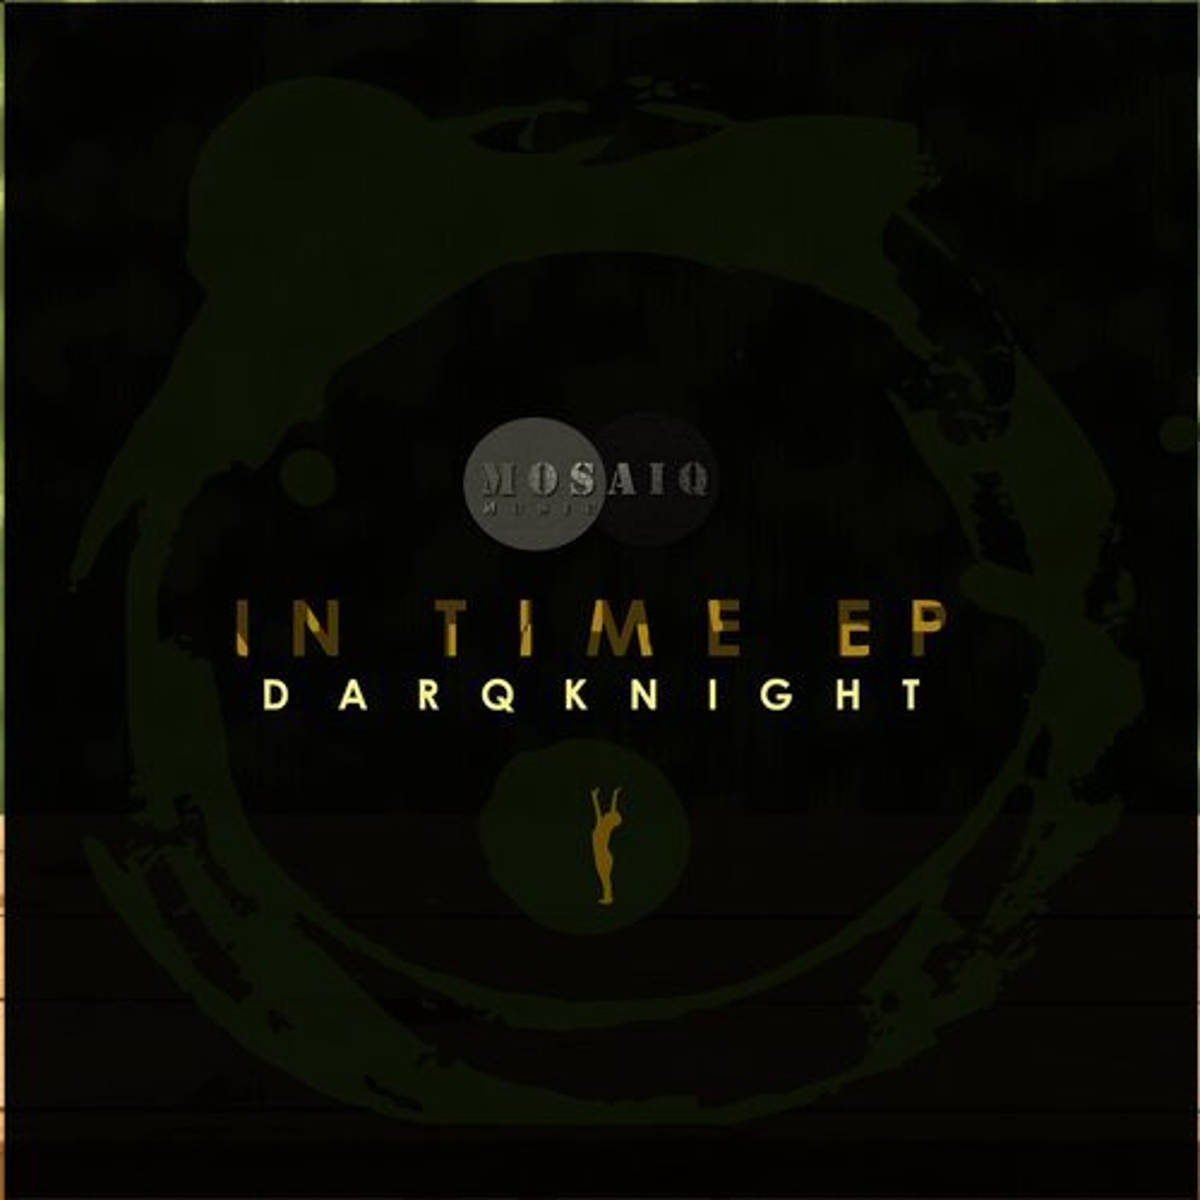 Darqknight - In Time (Afro-Tech Mix)